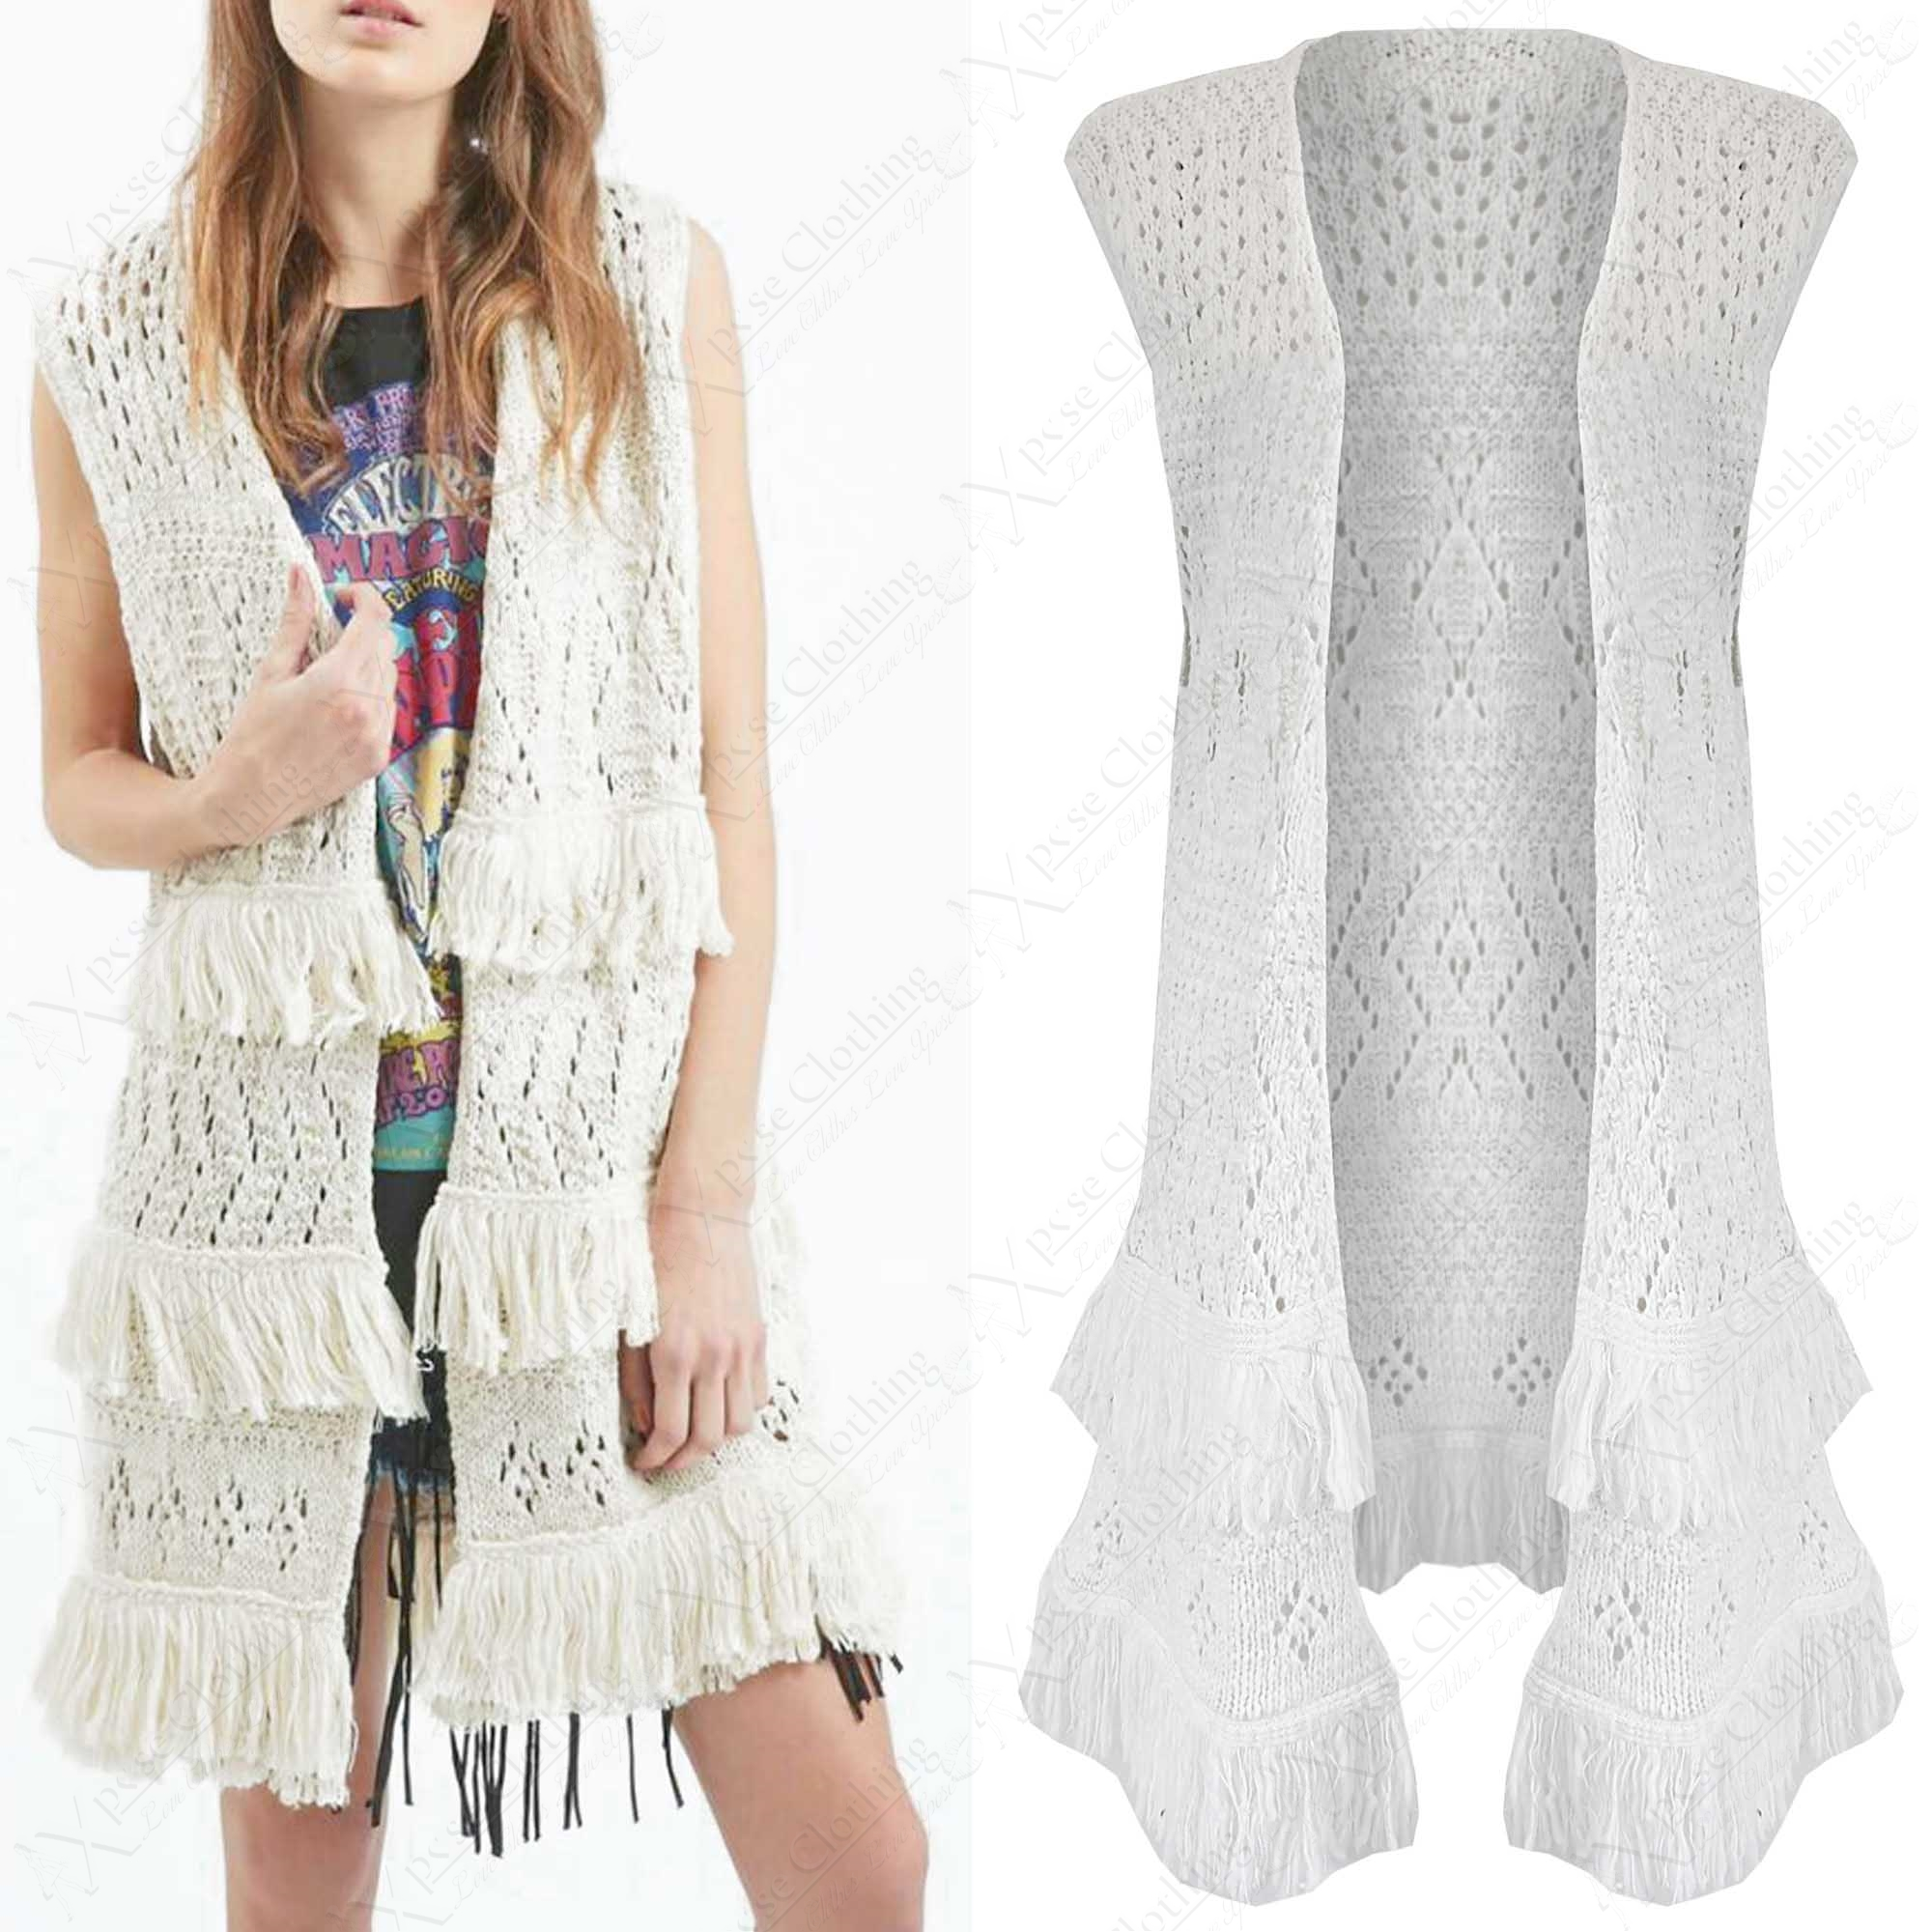 NEW LADIES KNIT TASSEL FRINGE CROCHET WAISTCOAT WOMEN LONG SLEEVELESS CARDI L...